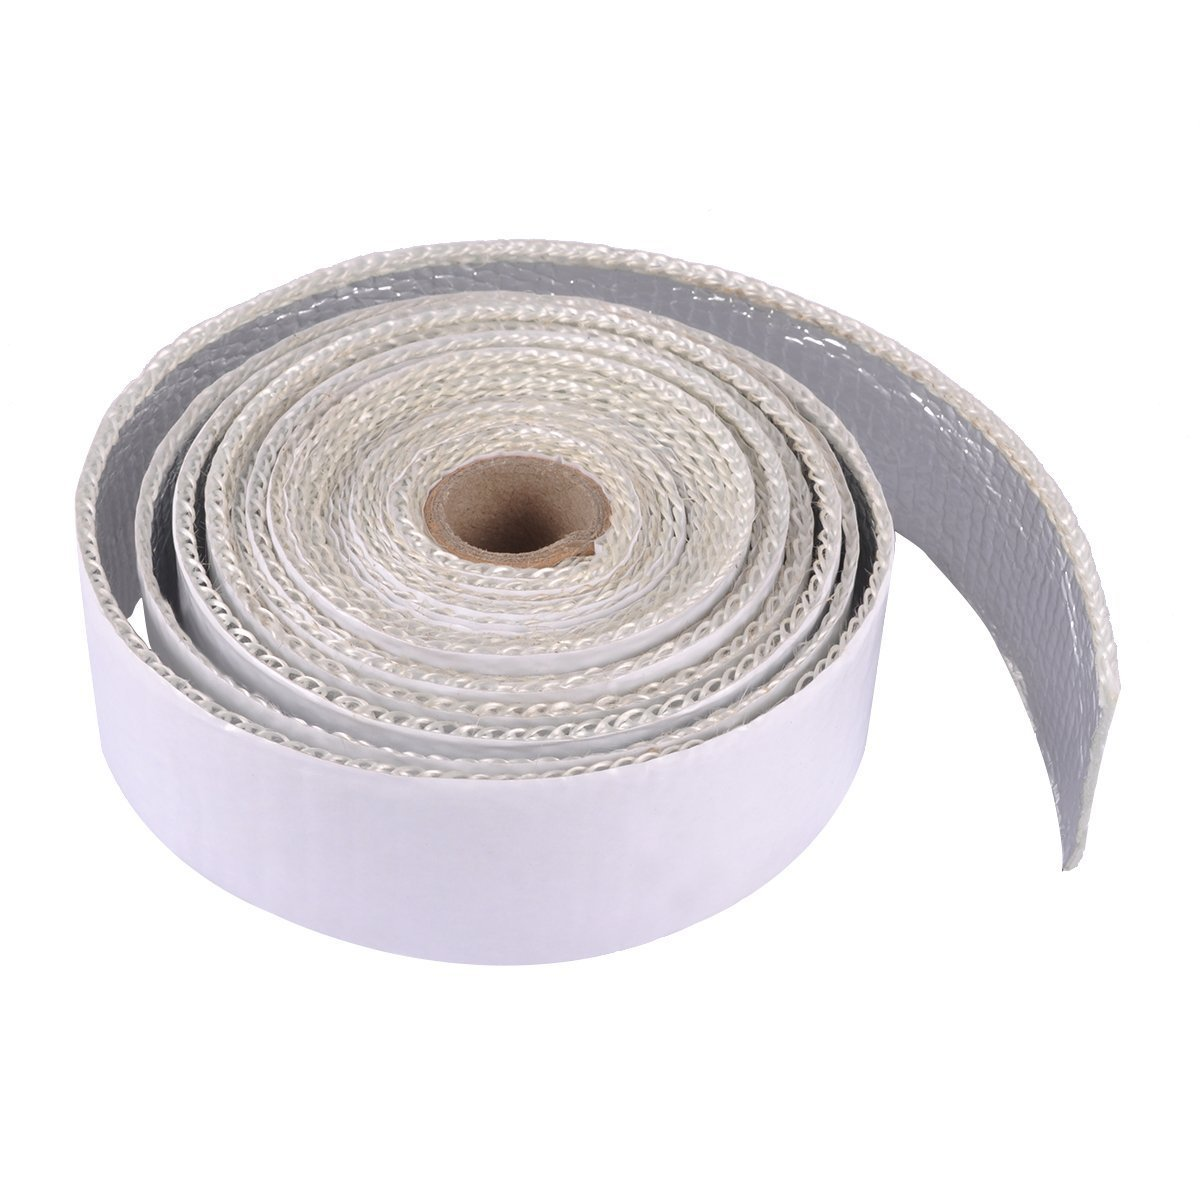 AutoEC Heat Shield tape, Self-Adhesive Heat Reflective Tape Roll, Adhesive Backed Heat Barrier for Car, Truck, Motorcycle (1.5'X 16') Motorcycle (1.5X 16' )